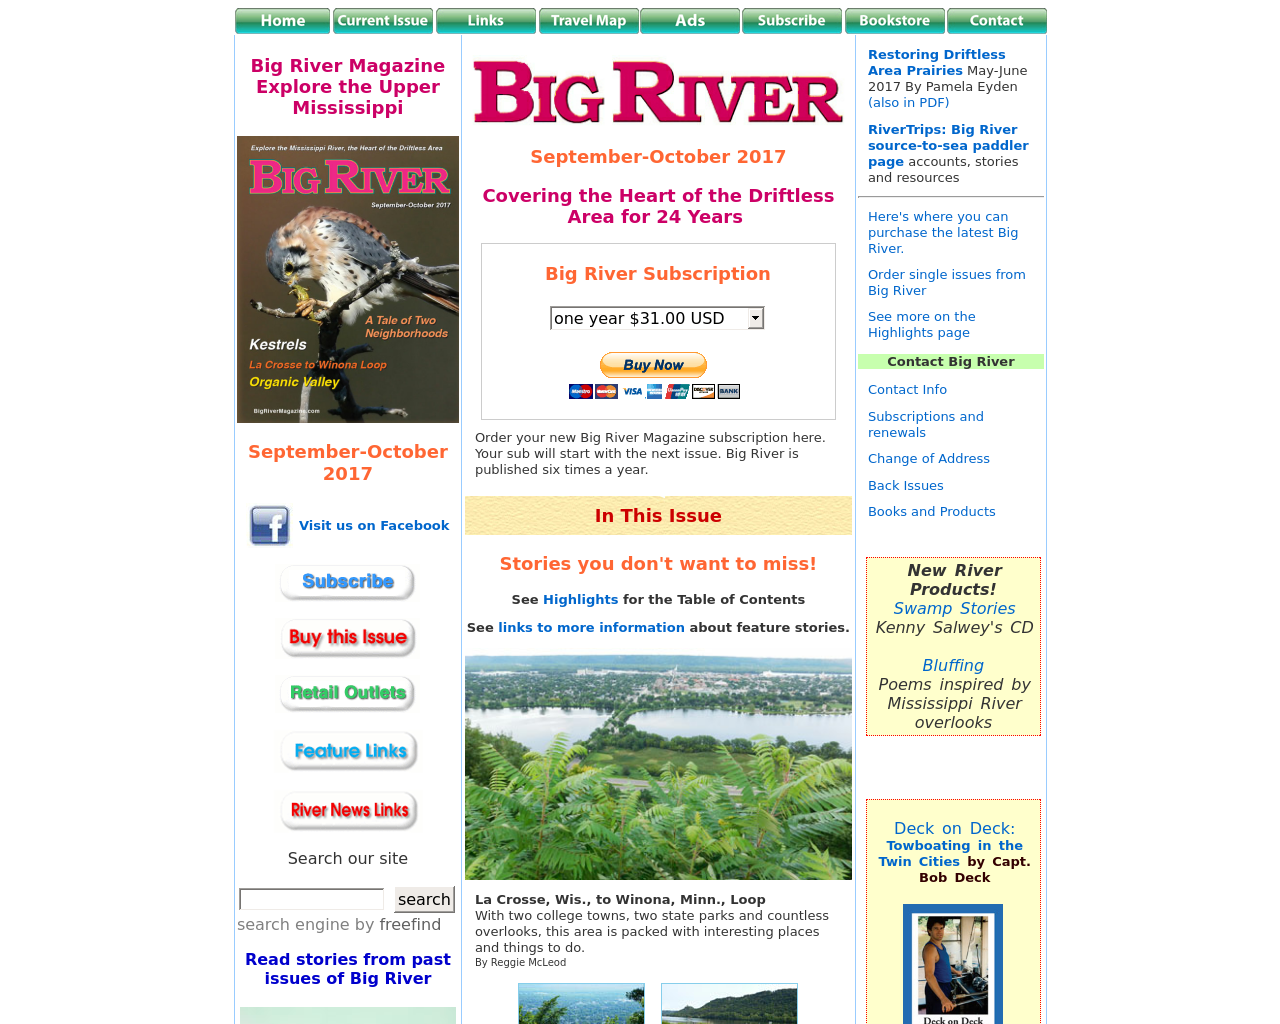 Big-River-Magazine-Advertising-Reviews-Pricing